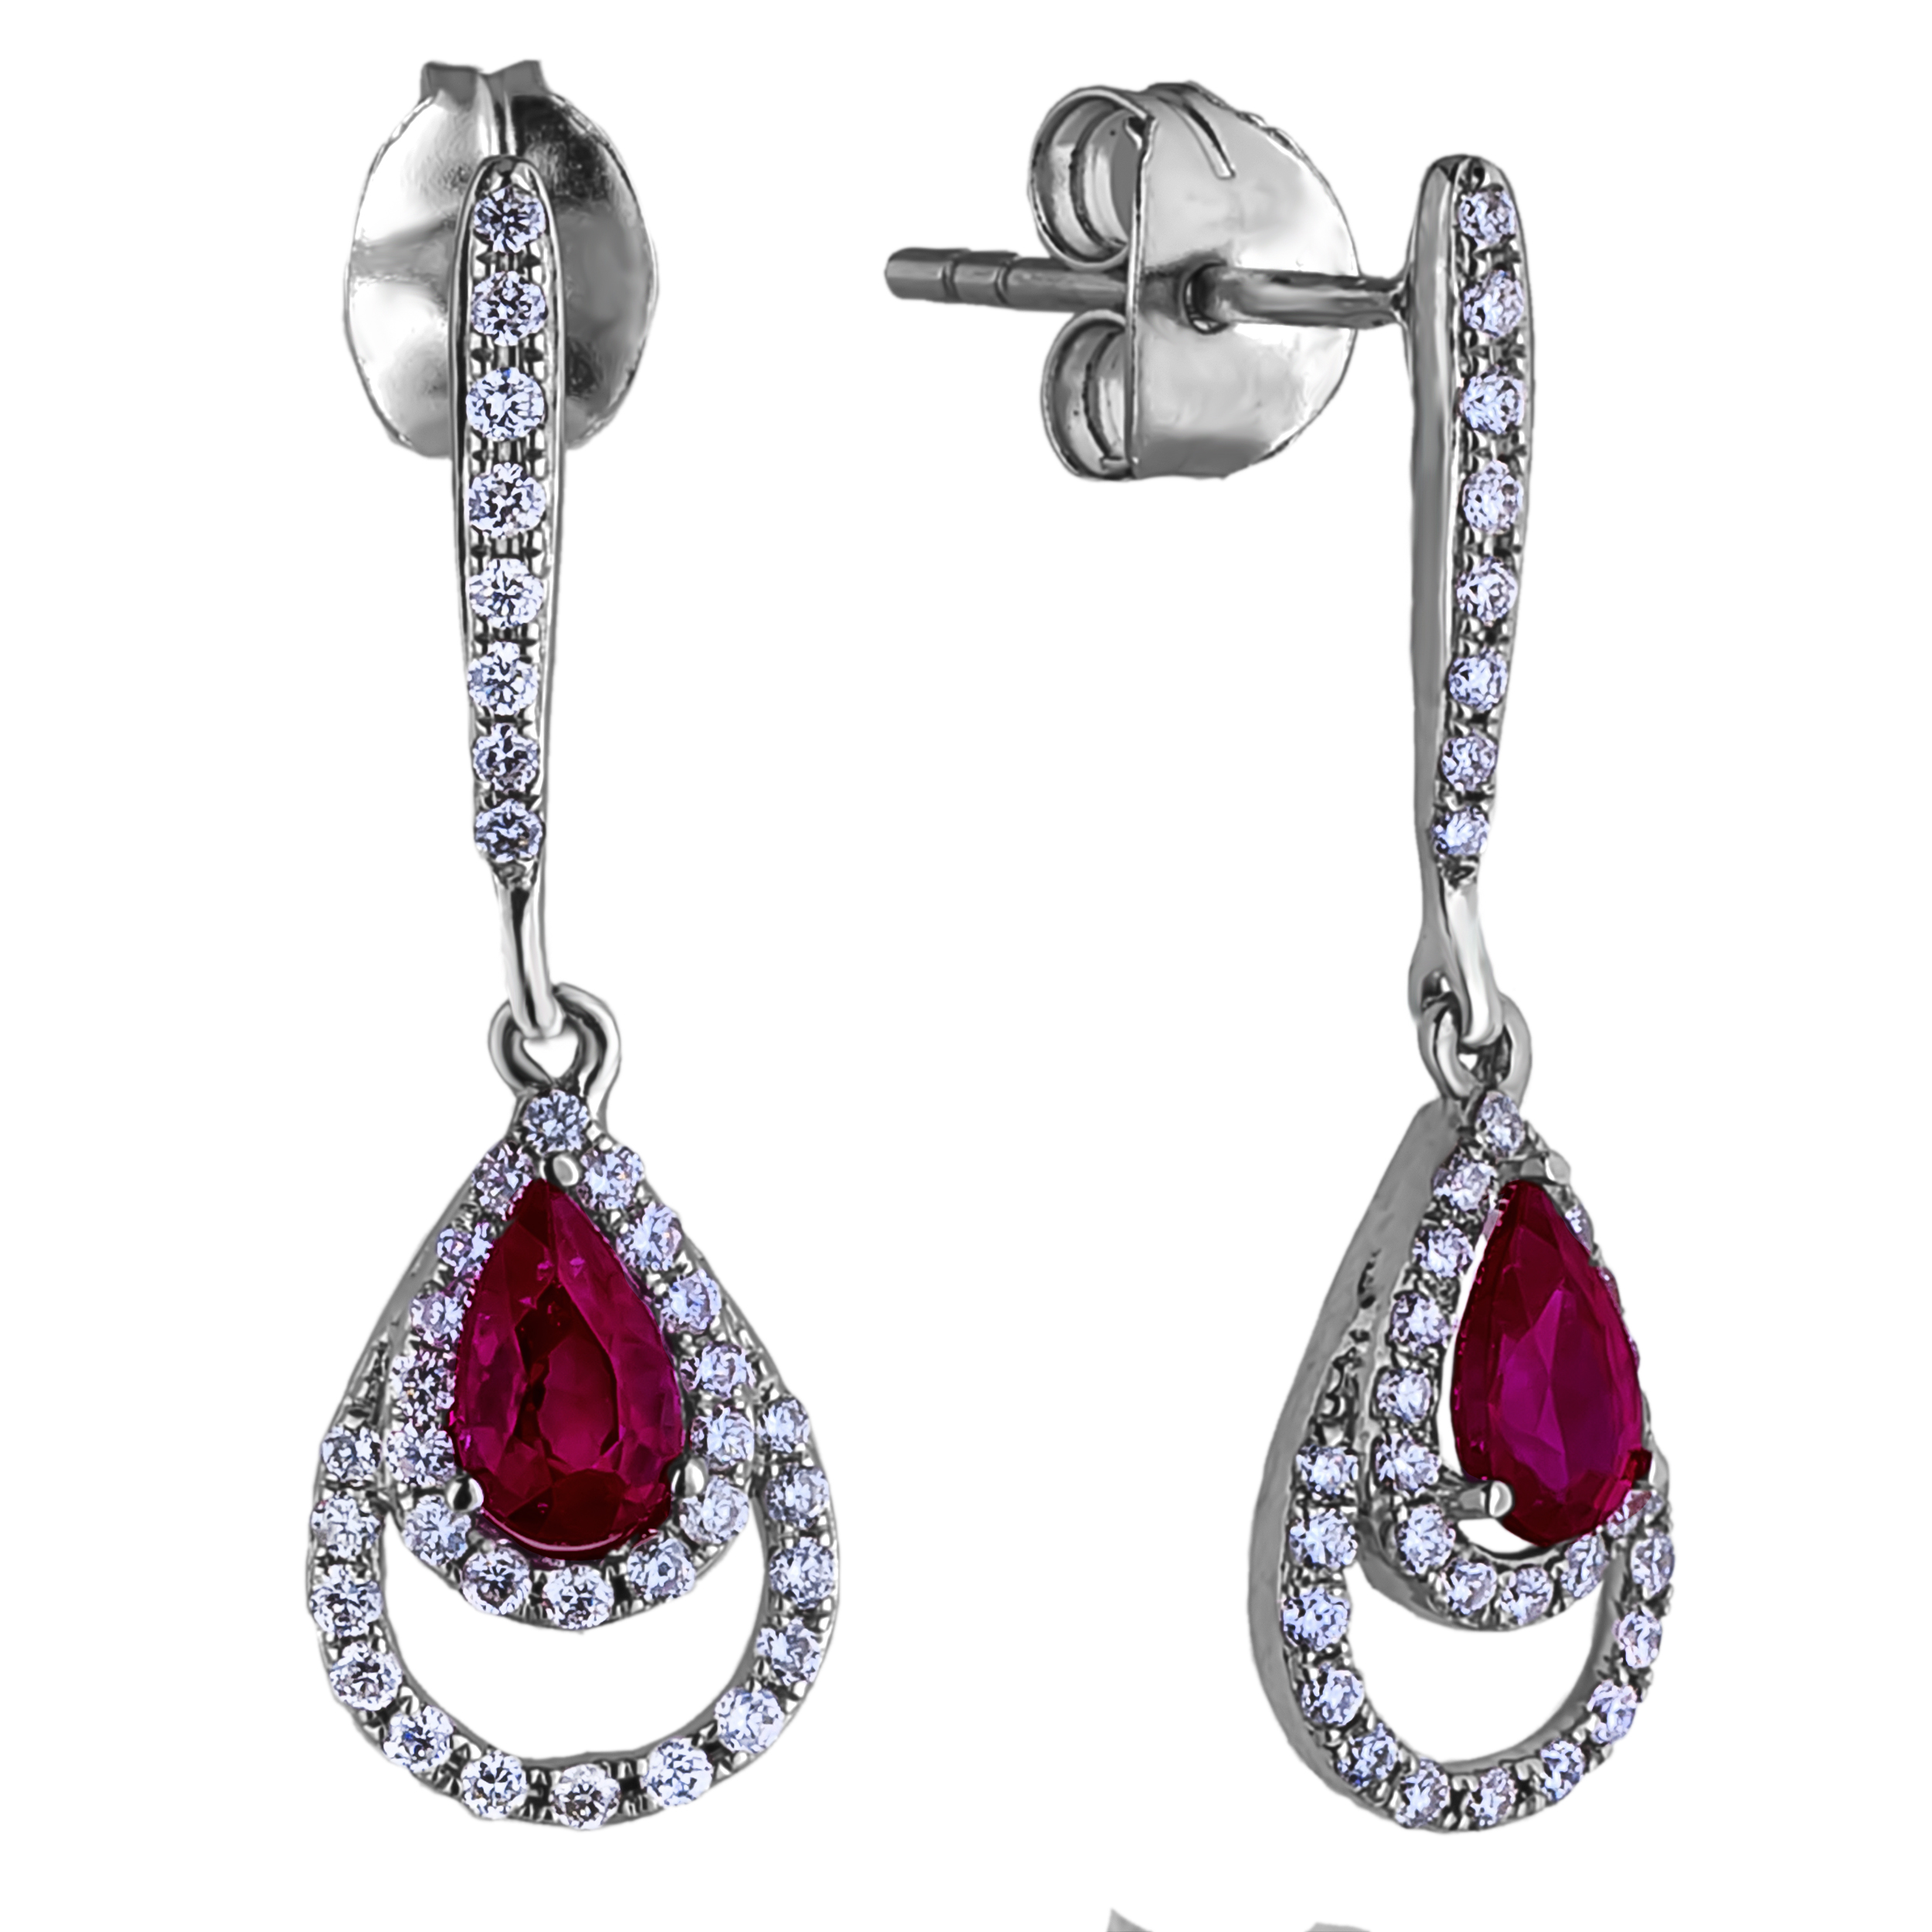 Diamond Dangle Earrings SGE355 (Earrings)